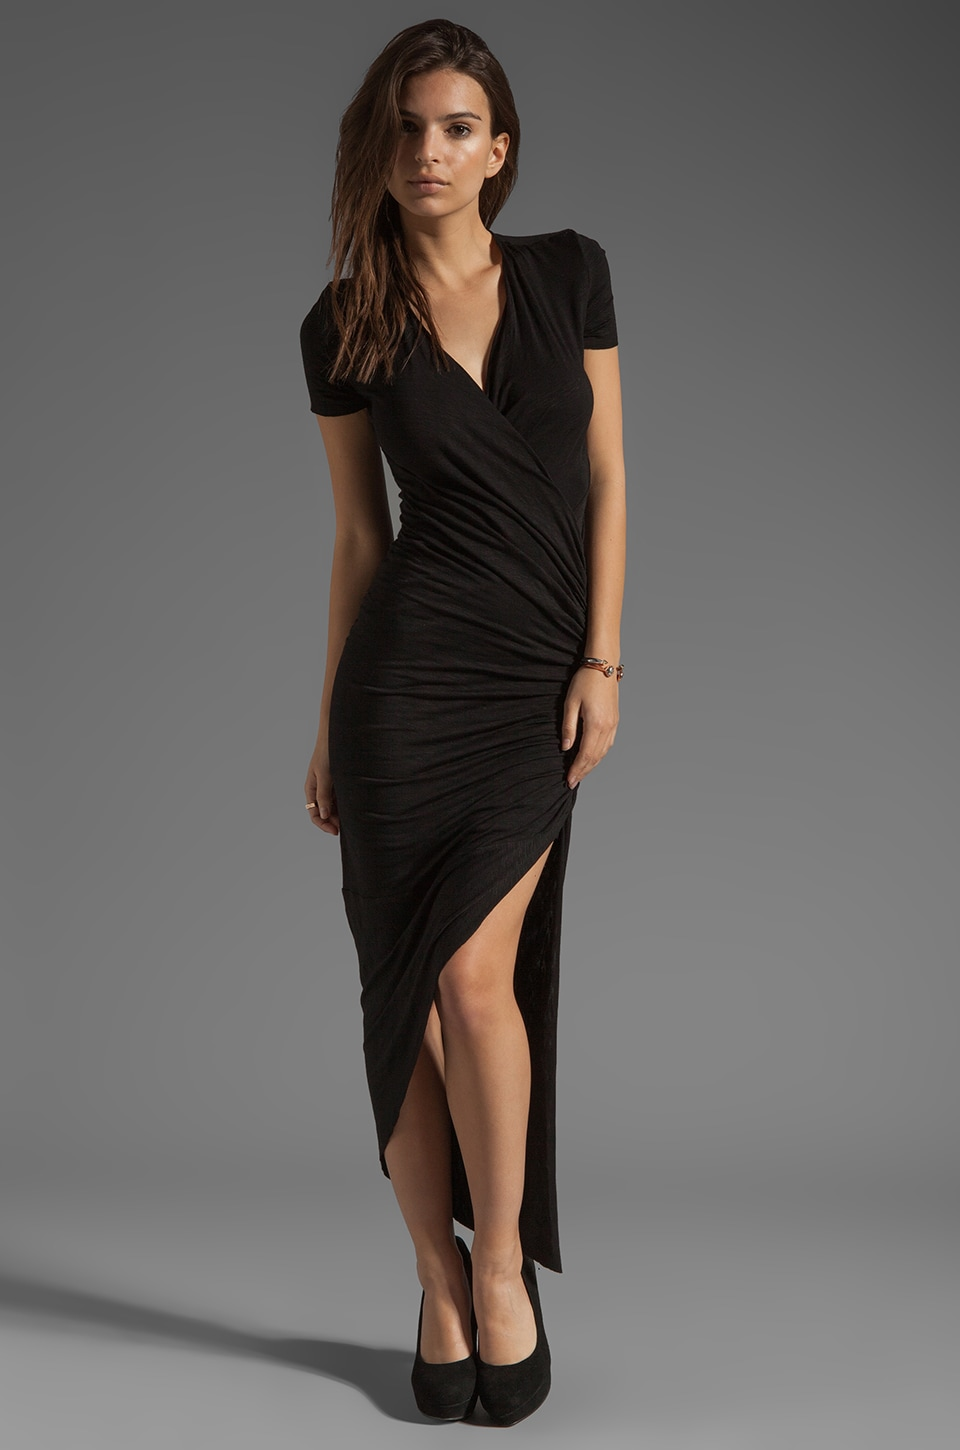 dolan Slub Jersey Asymmetrical Dress in Black